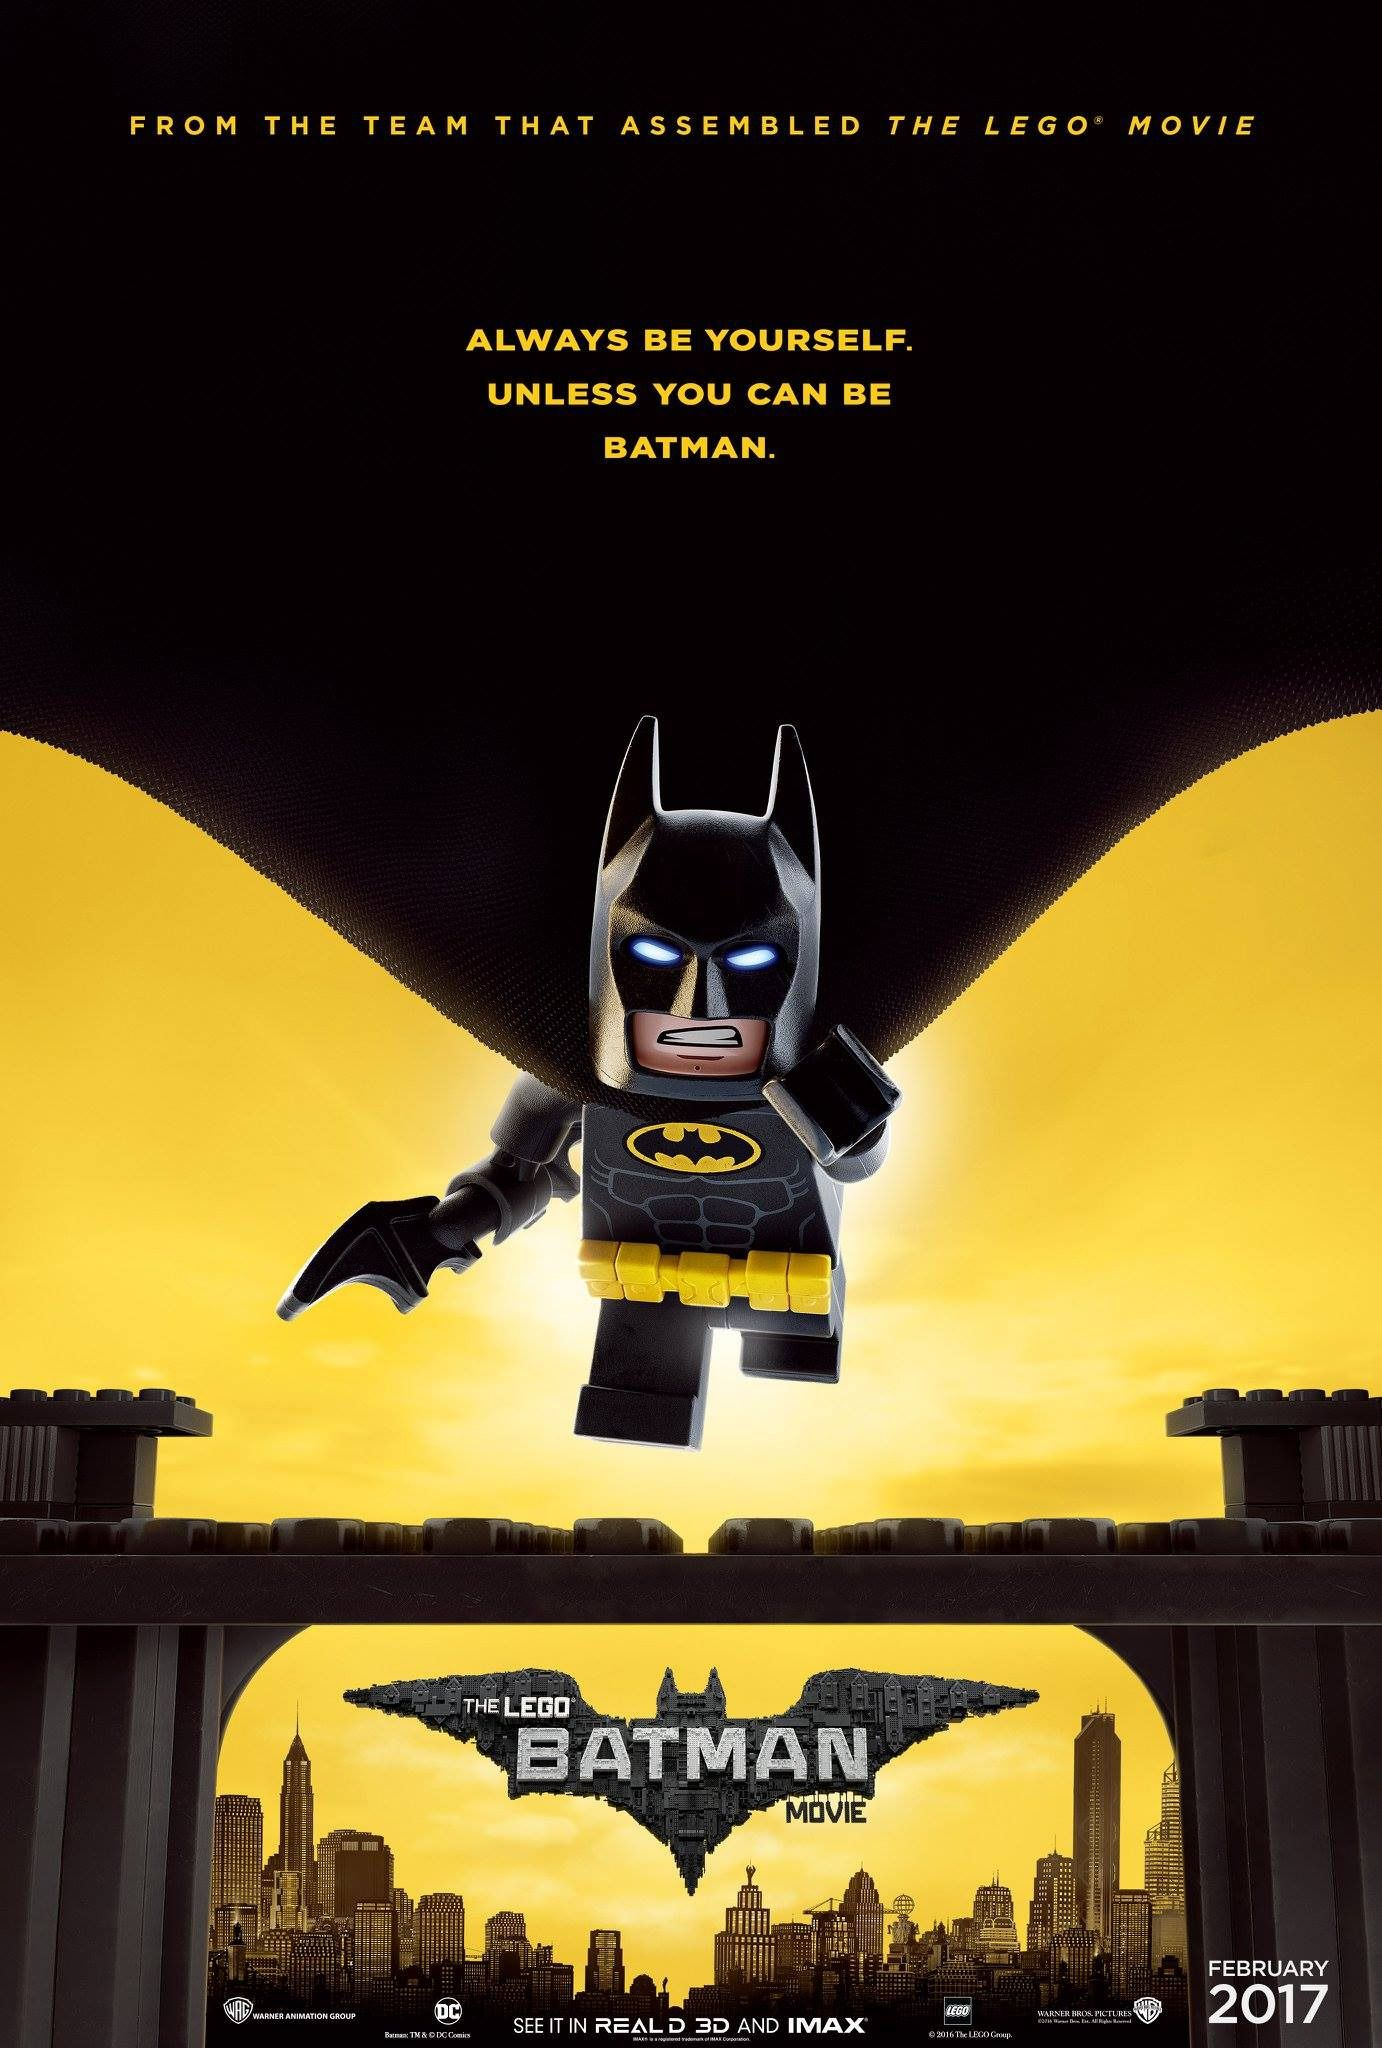 The Lego Batman Movie Always Be Yourself Unless You Can Be